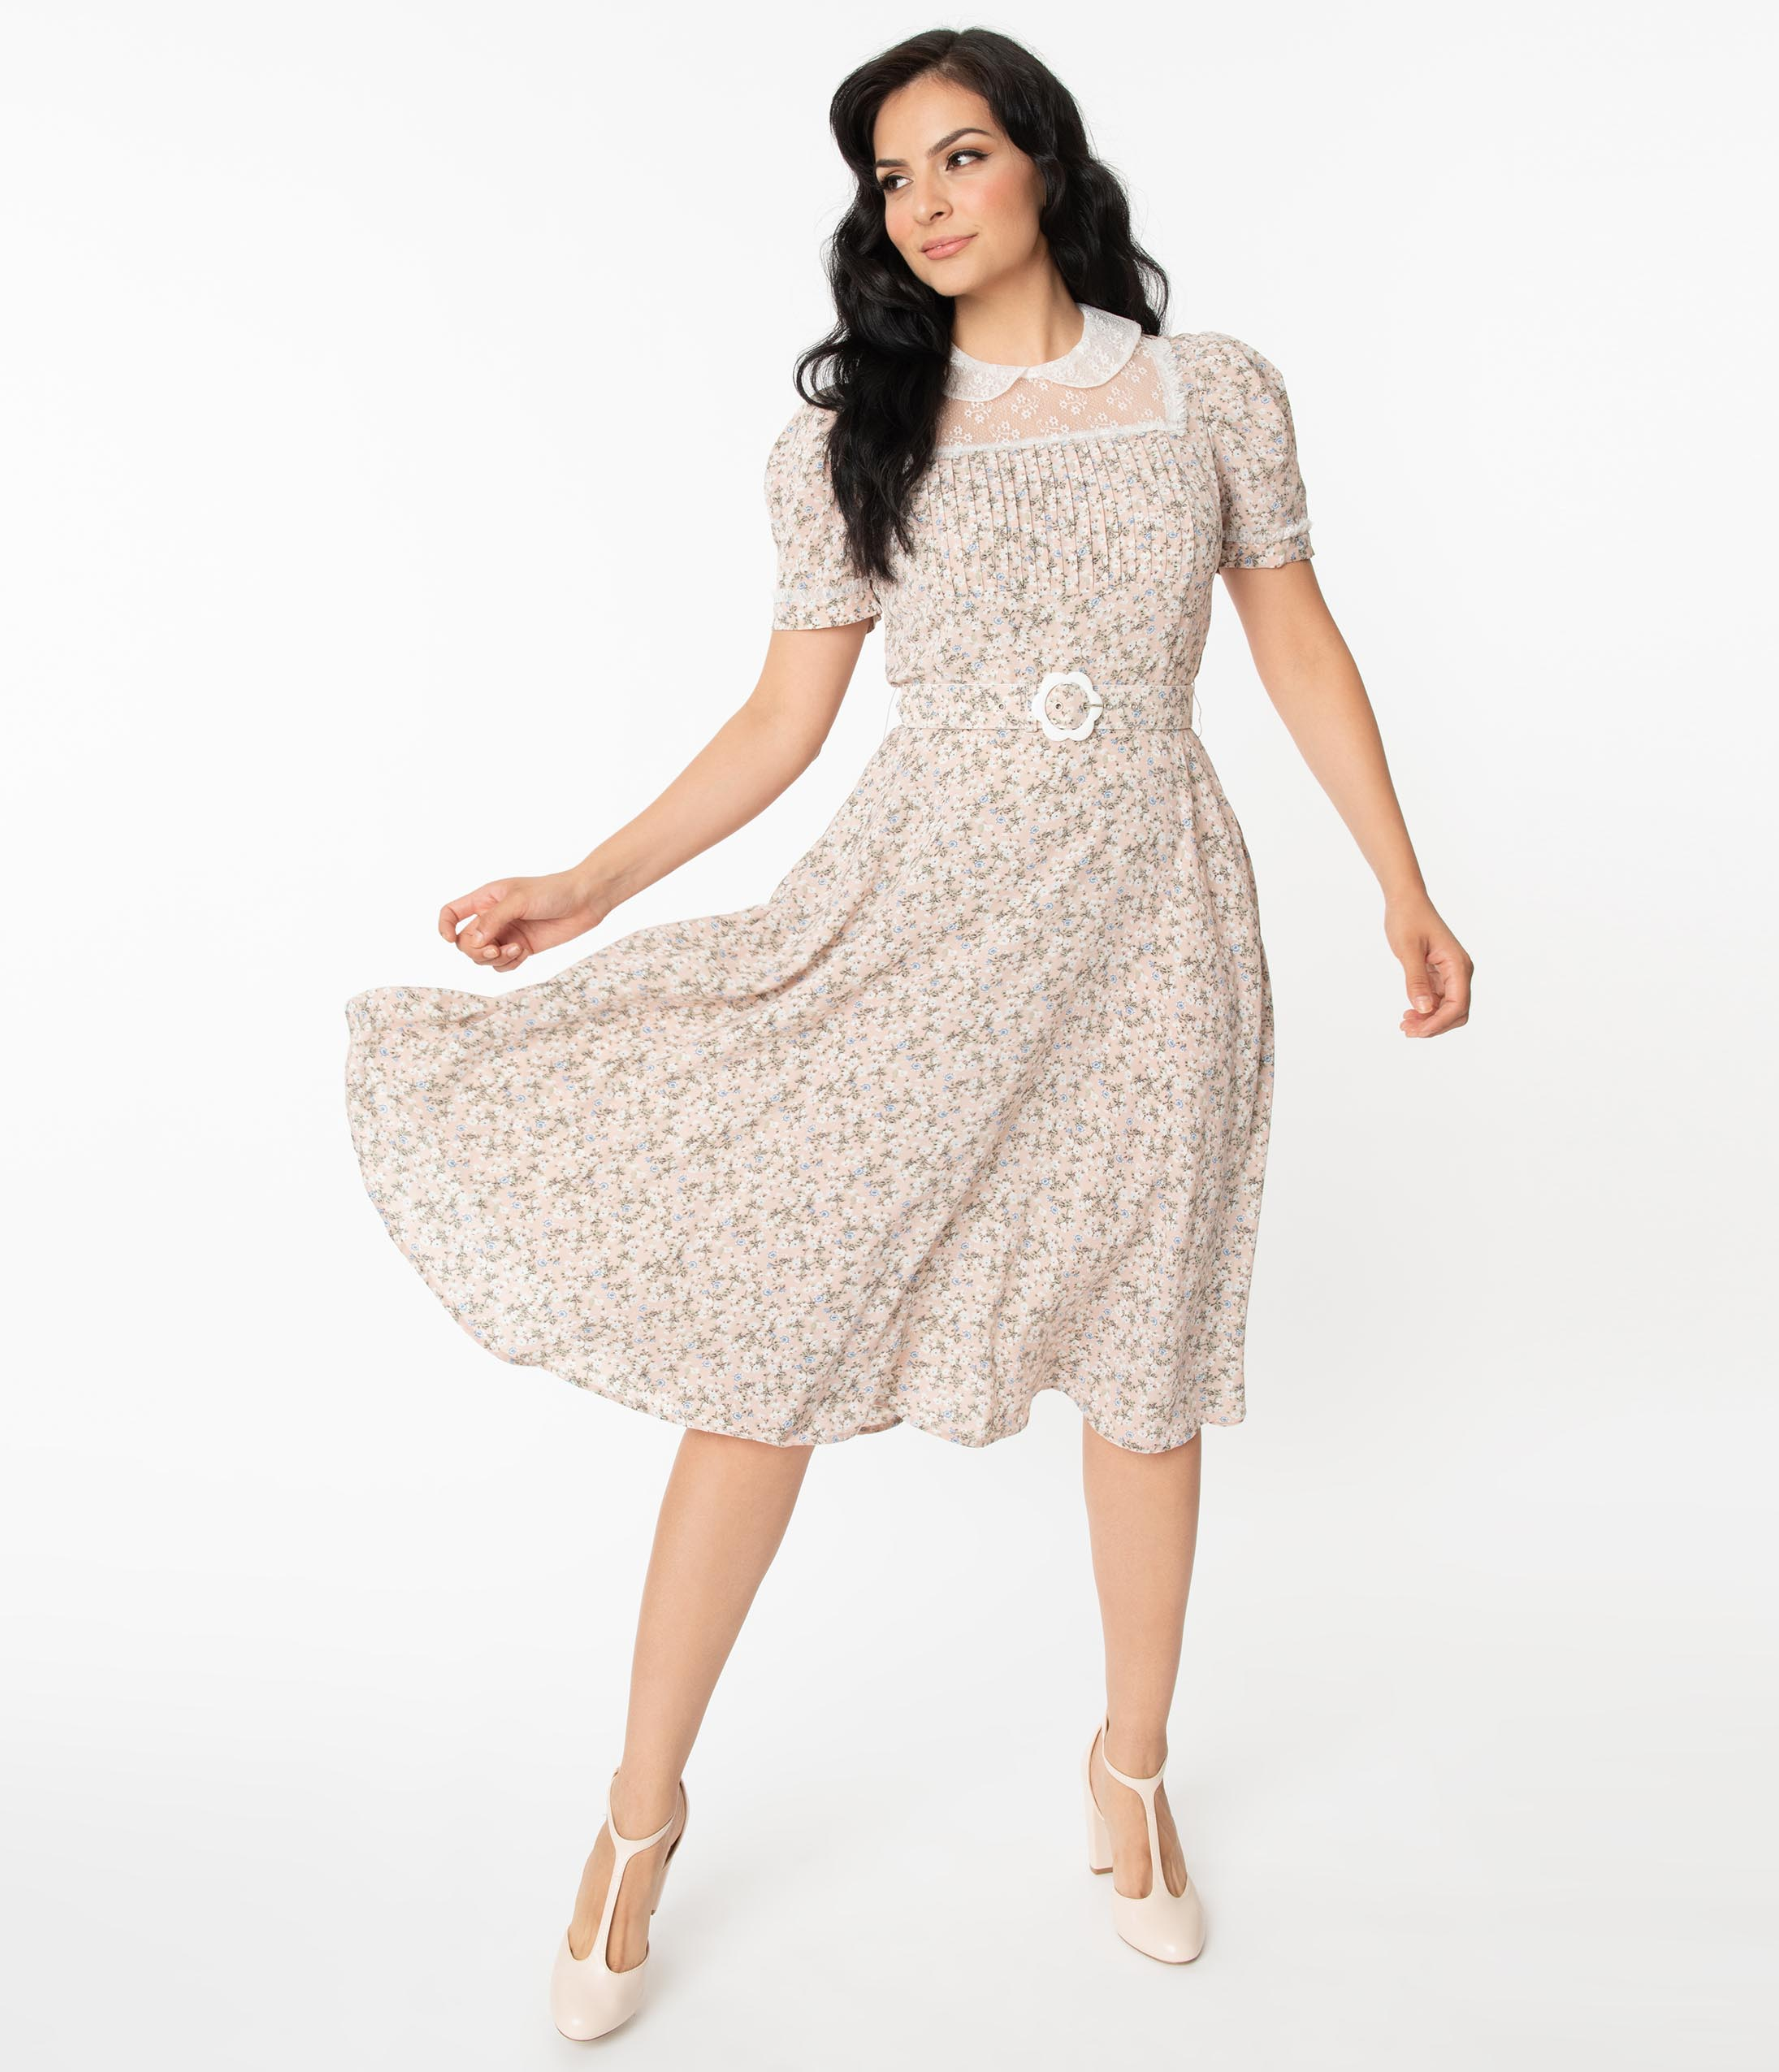 1940s Fashion Advice for Tall Women Unique Vintage Dusty Pink Dainty Floral Morton Swing Dress $78.00 AT vintagedancer.com